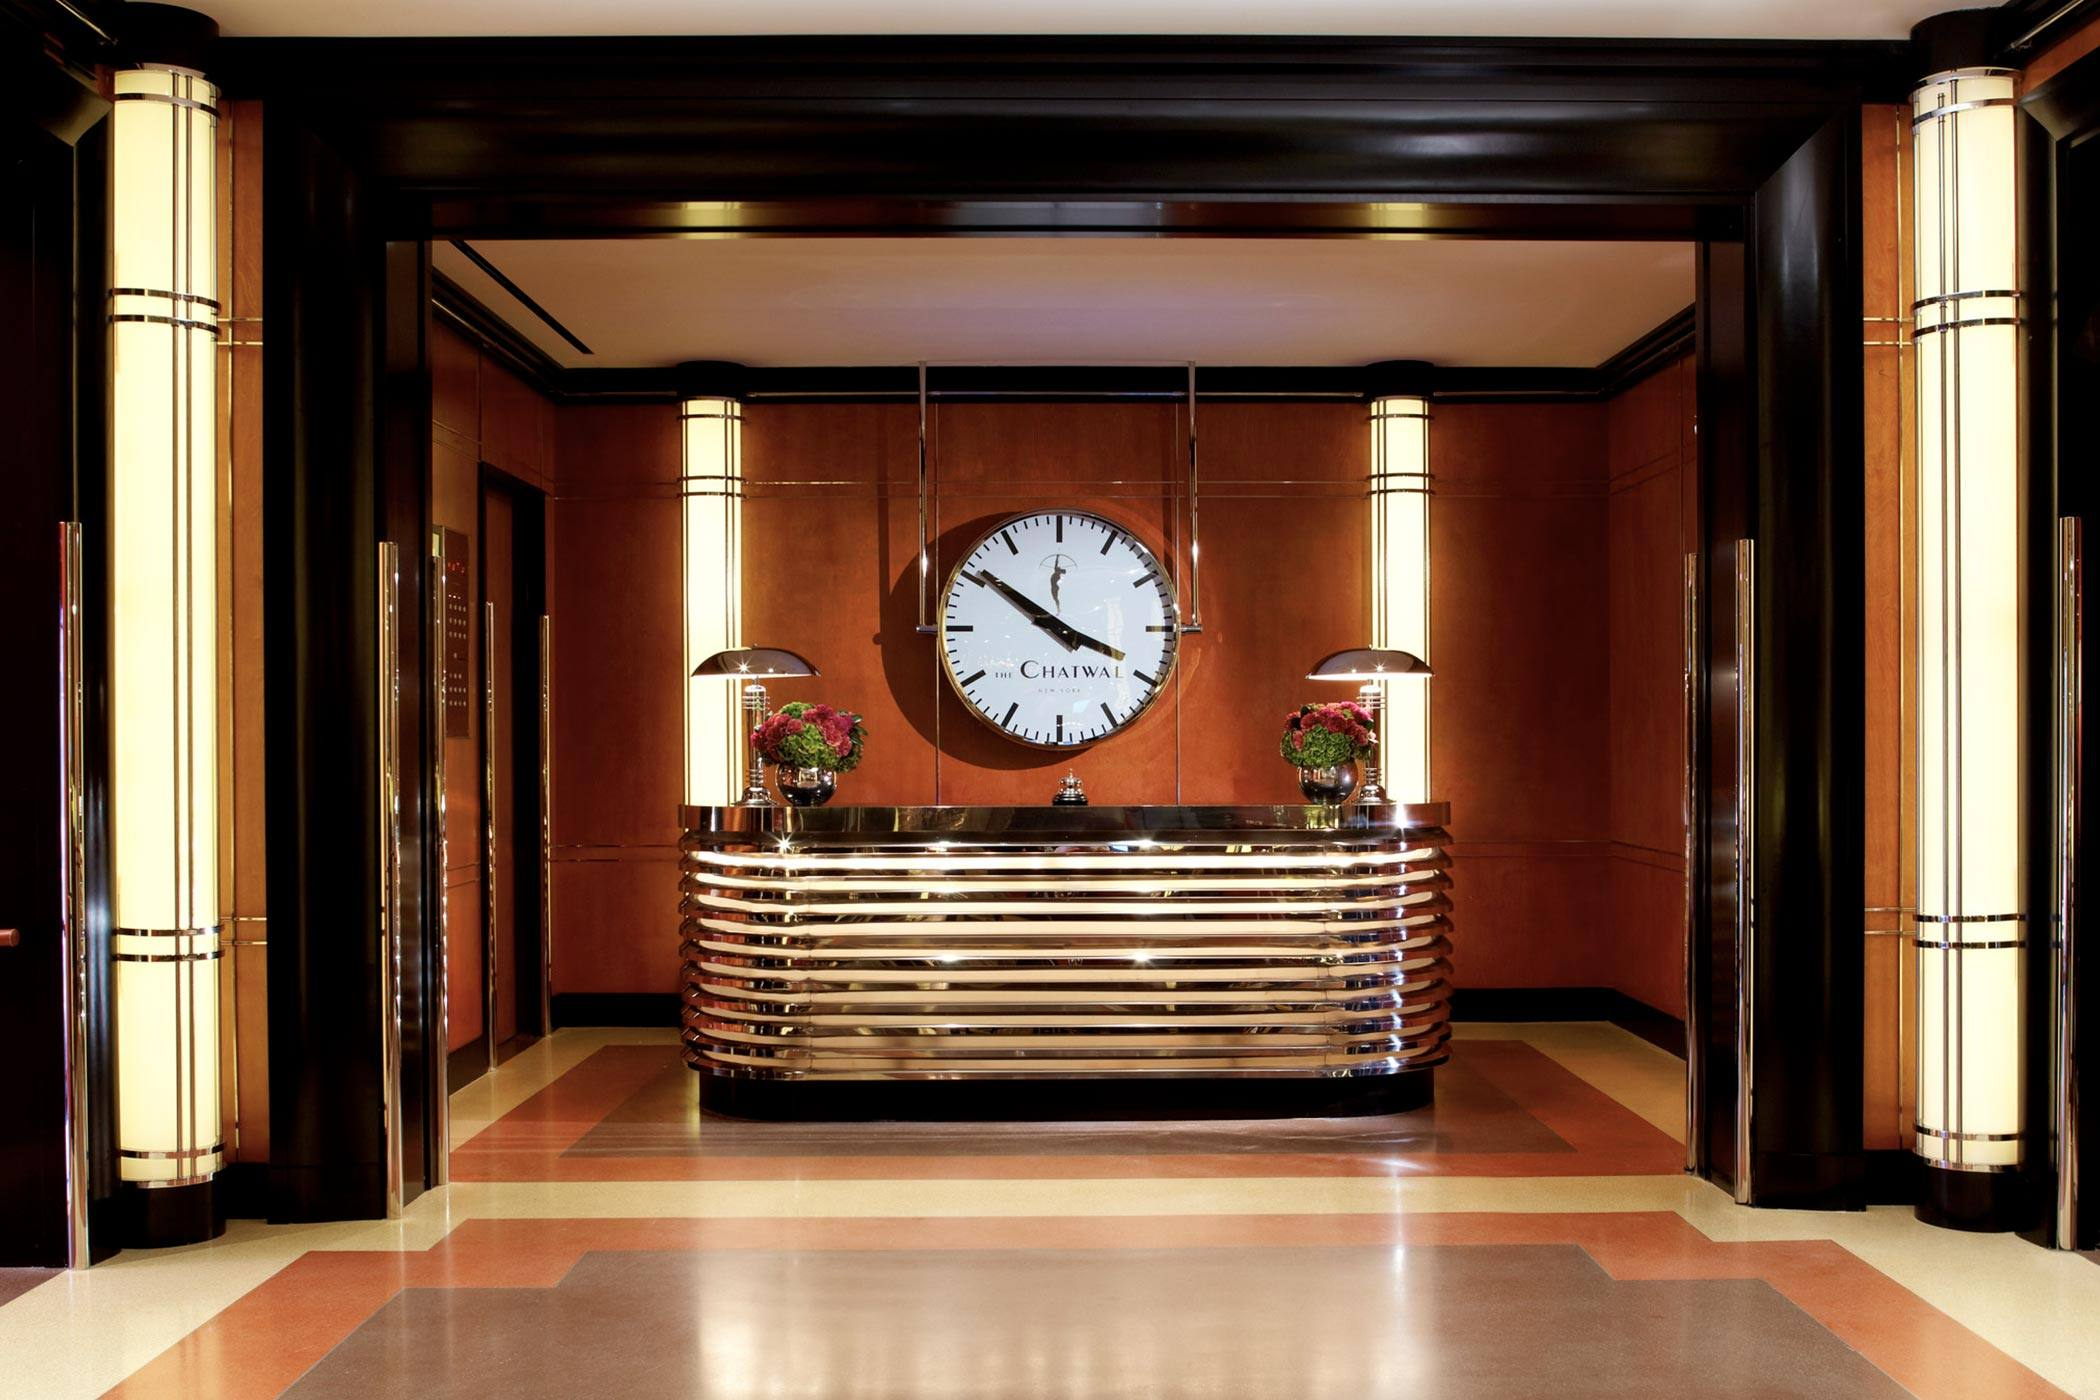 The-Chatwal-Luxury-Collection-Hotel-New-York-Lobby-Reception